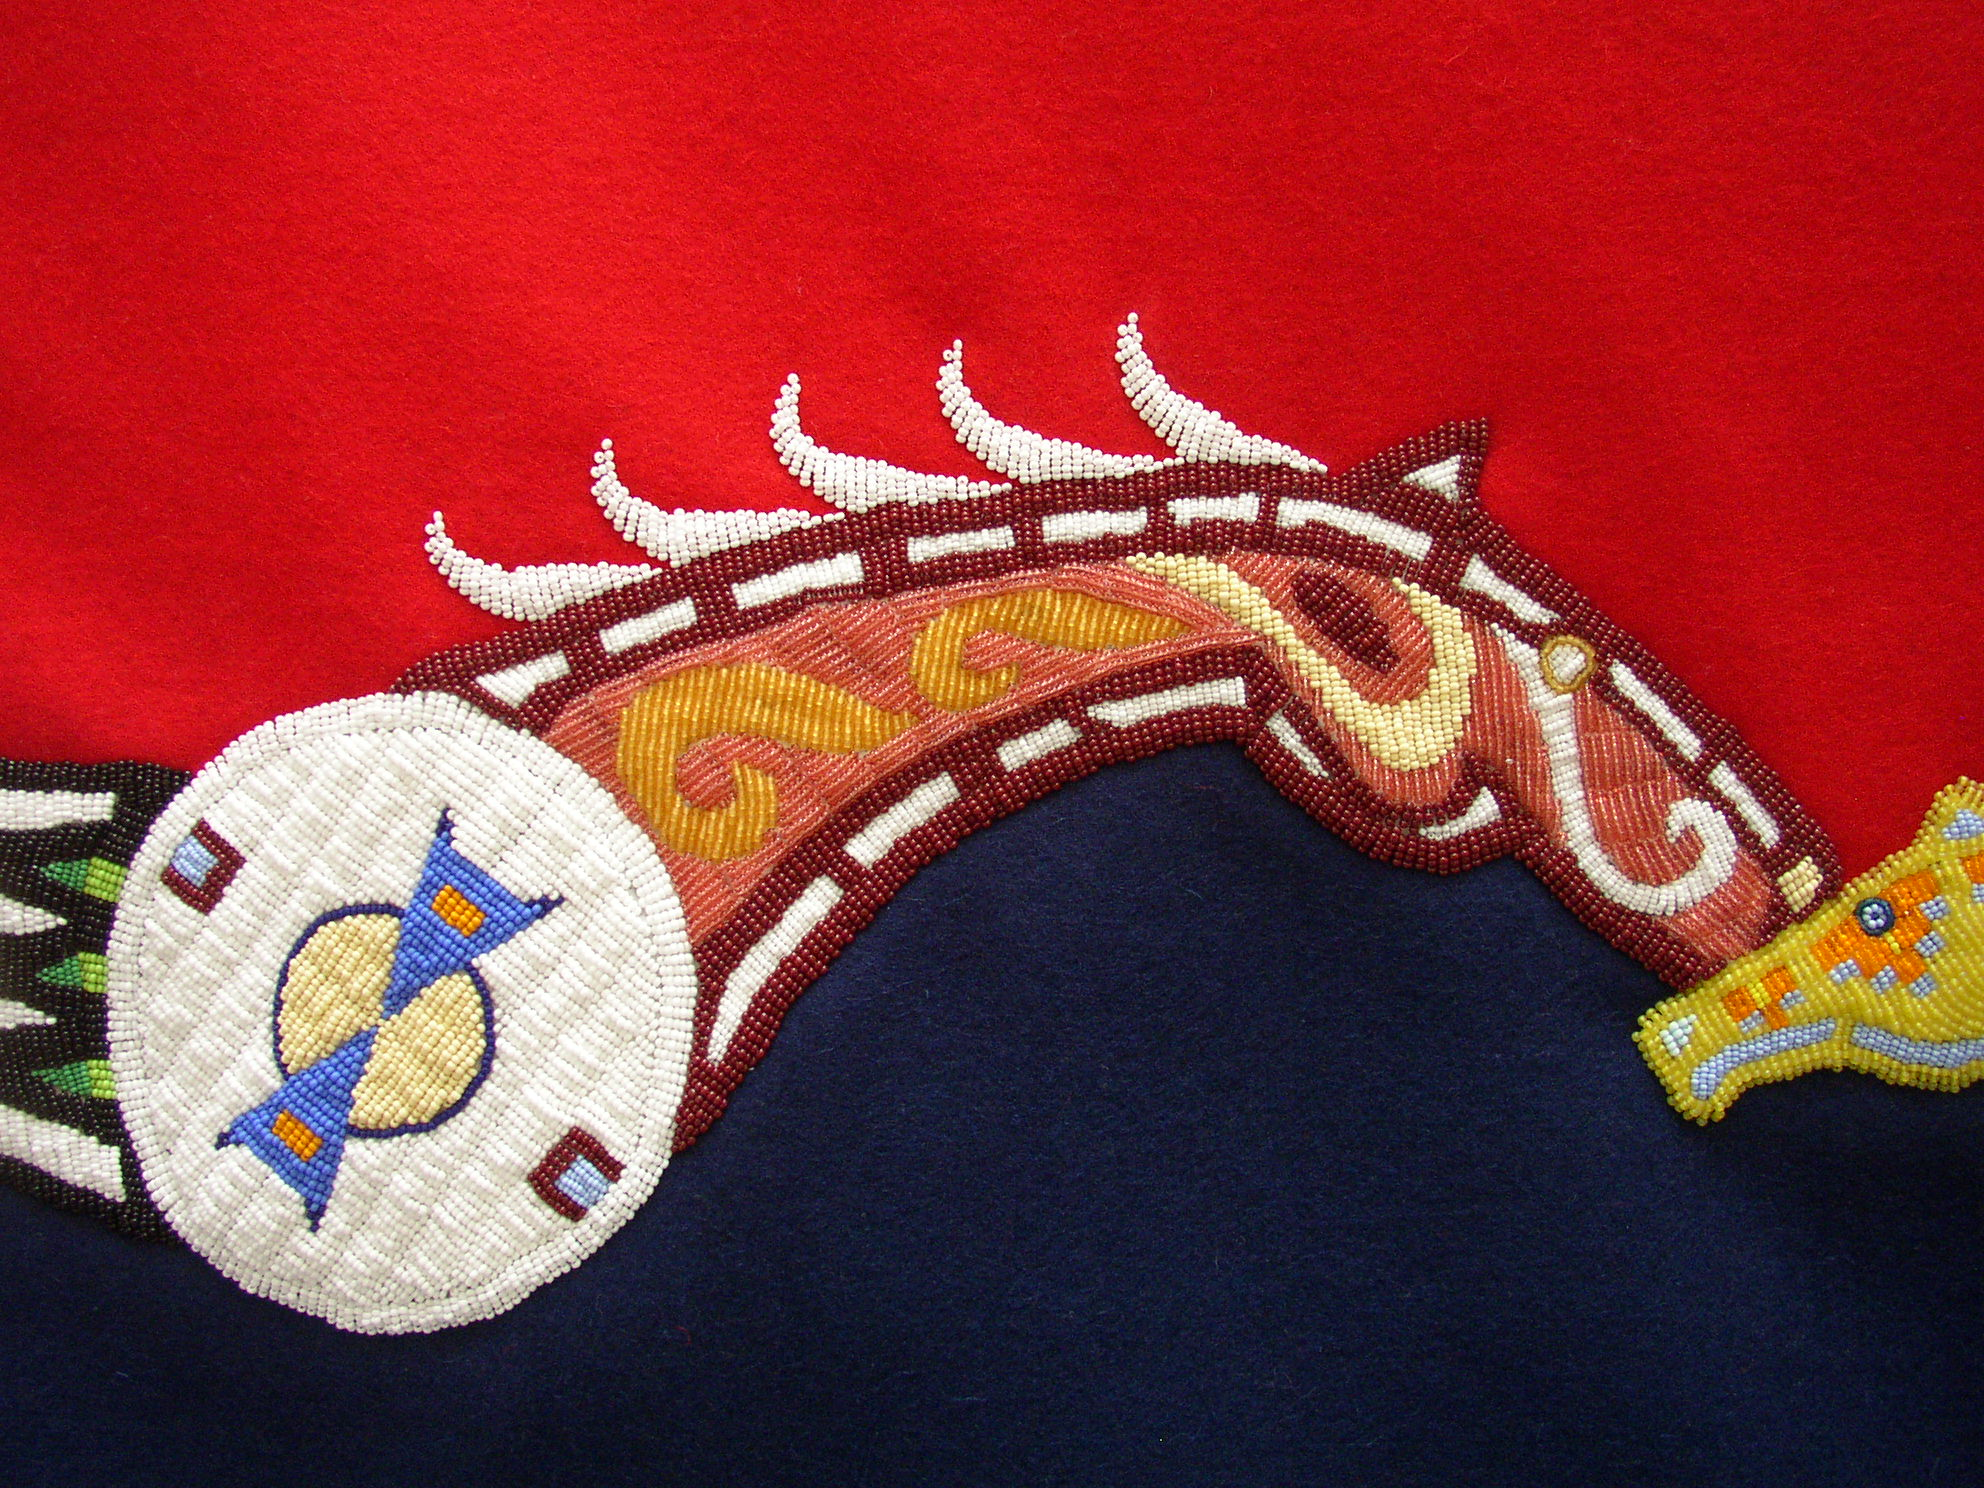 Six Horses Courting Blanket, Detail